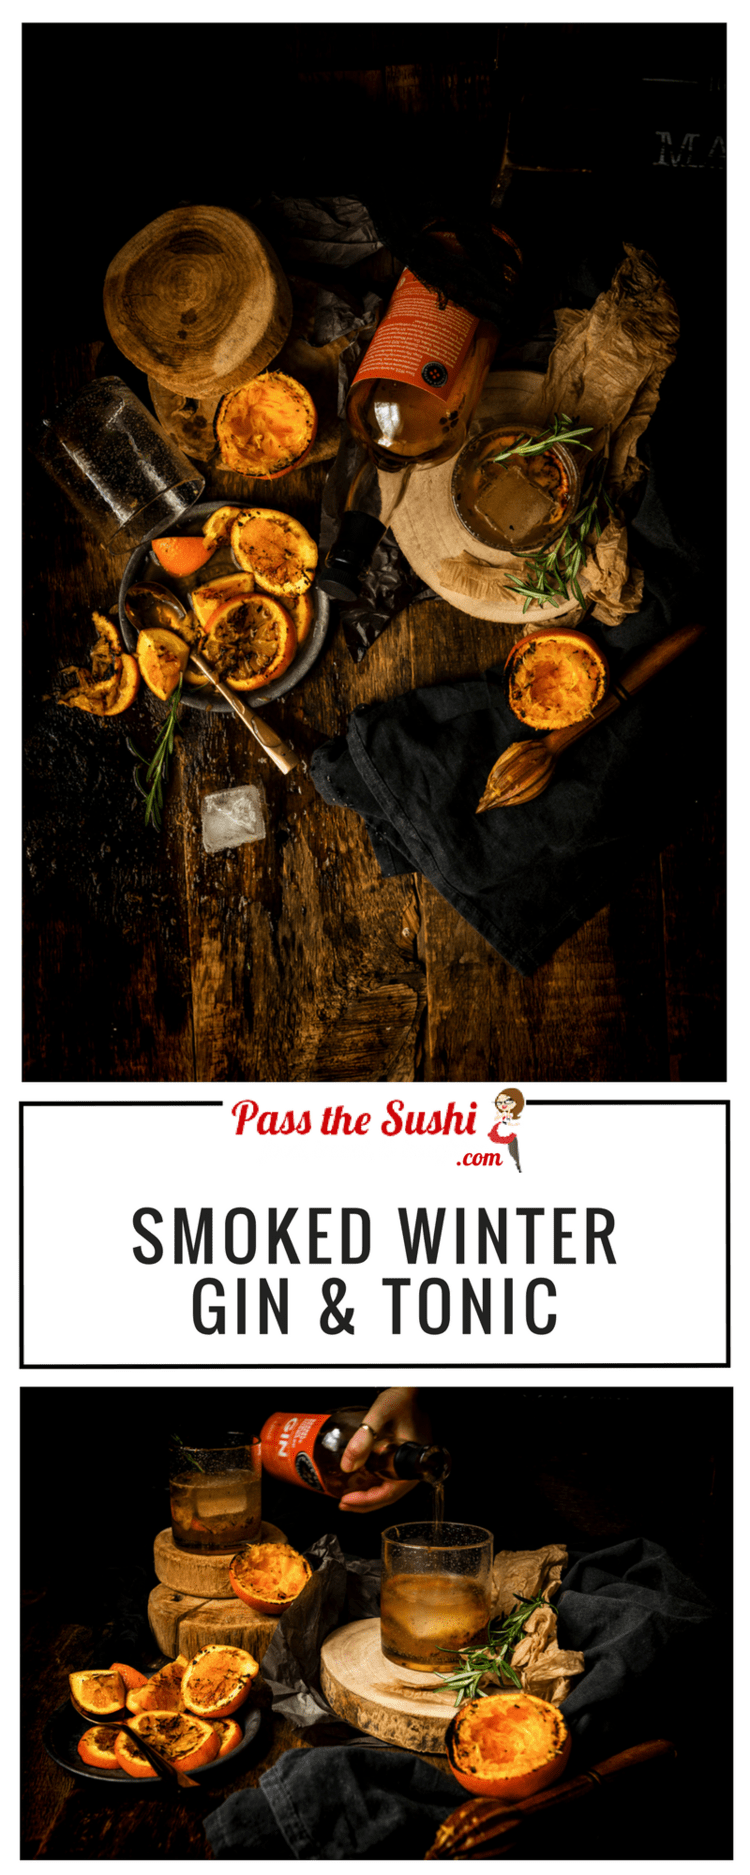 Smoked Winter Gin and Tonic Cocktail by Kita Roberts